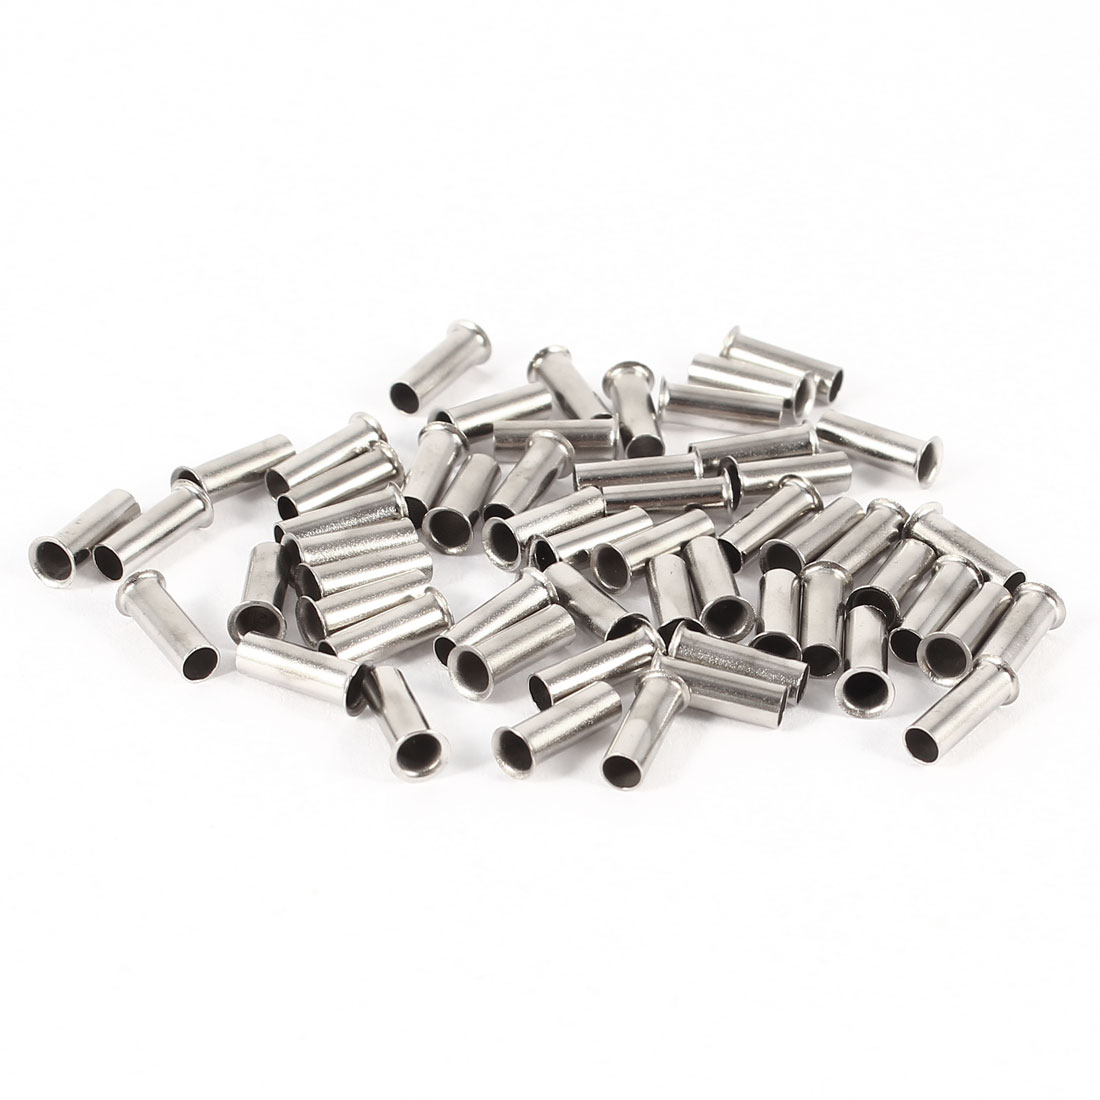 50 Pieces Silver Tone EN2508 Copper A.W.G 14 8mmx3mm Non-Insulated Wire Ferrules